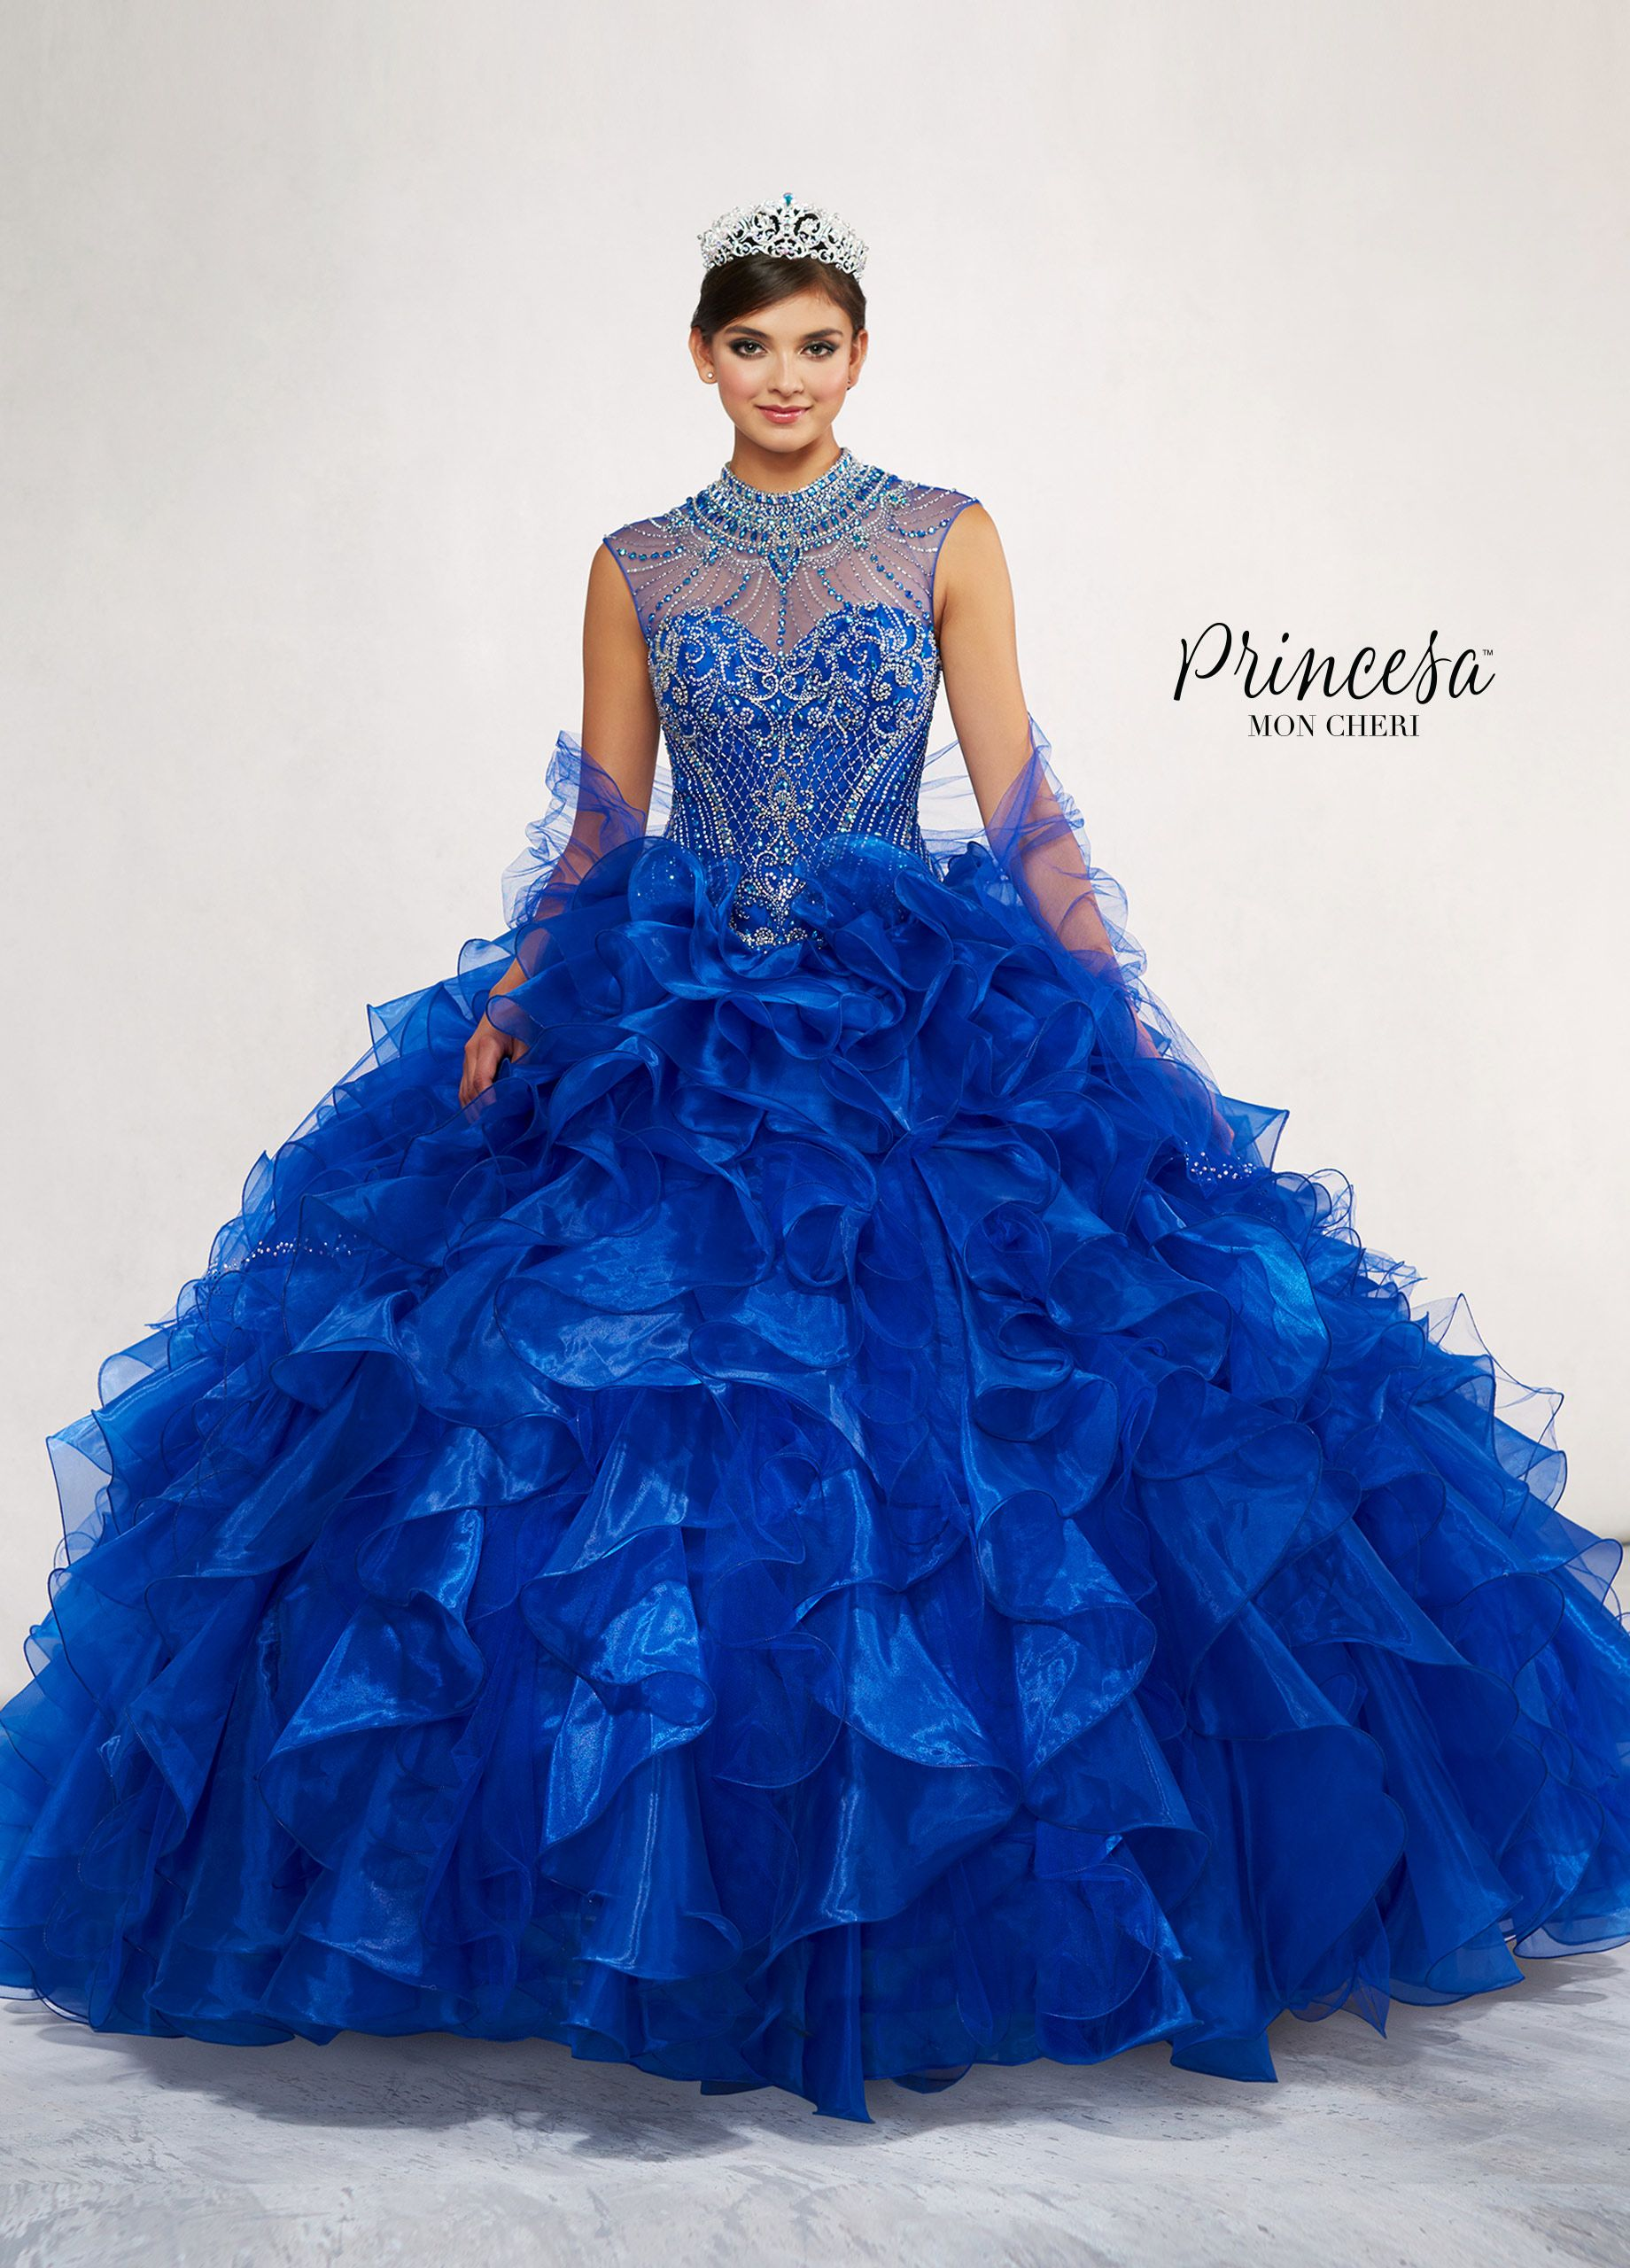 a55bffc2512 Princesa By Mon Cheri PR11801 - This regal Quinceañera dress was designed  for the Princesa who wants to make a statement on her big day!